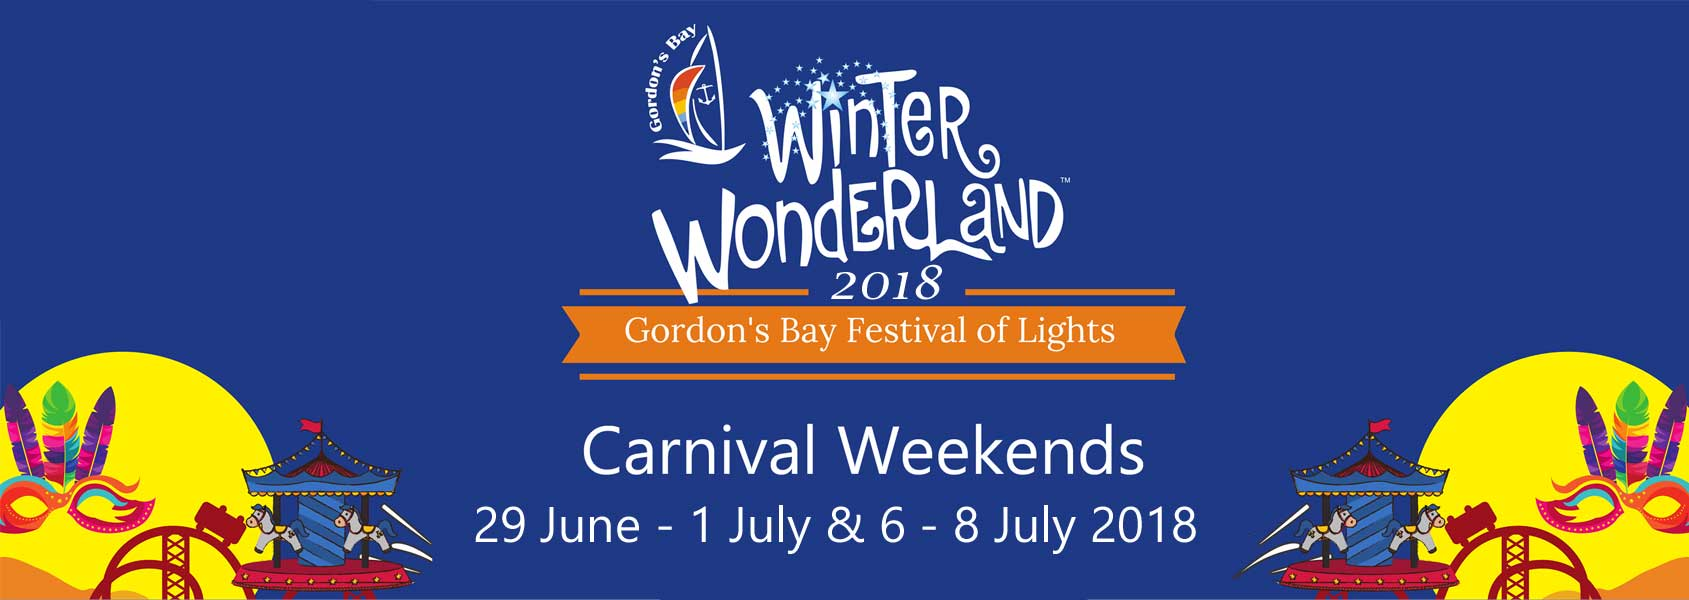 Gordons Bay Winter Wonderland Festival 2017